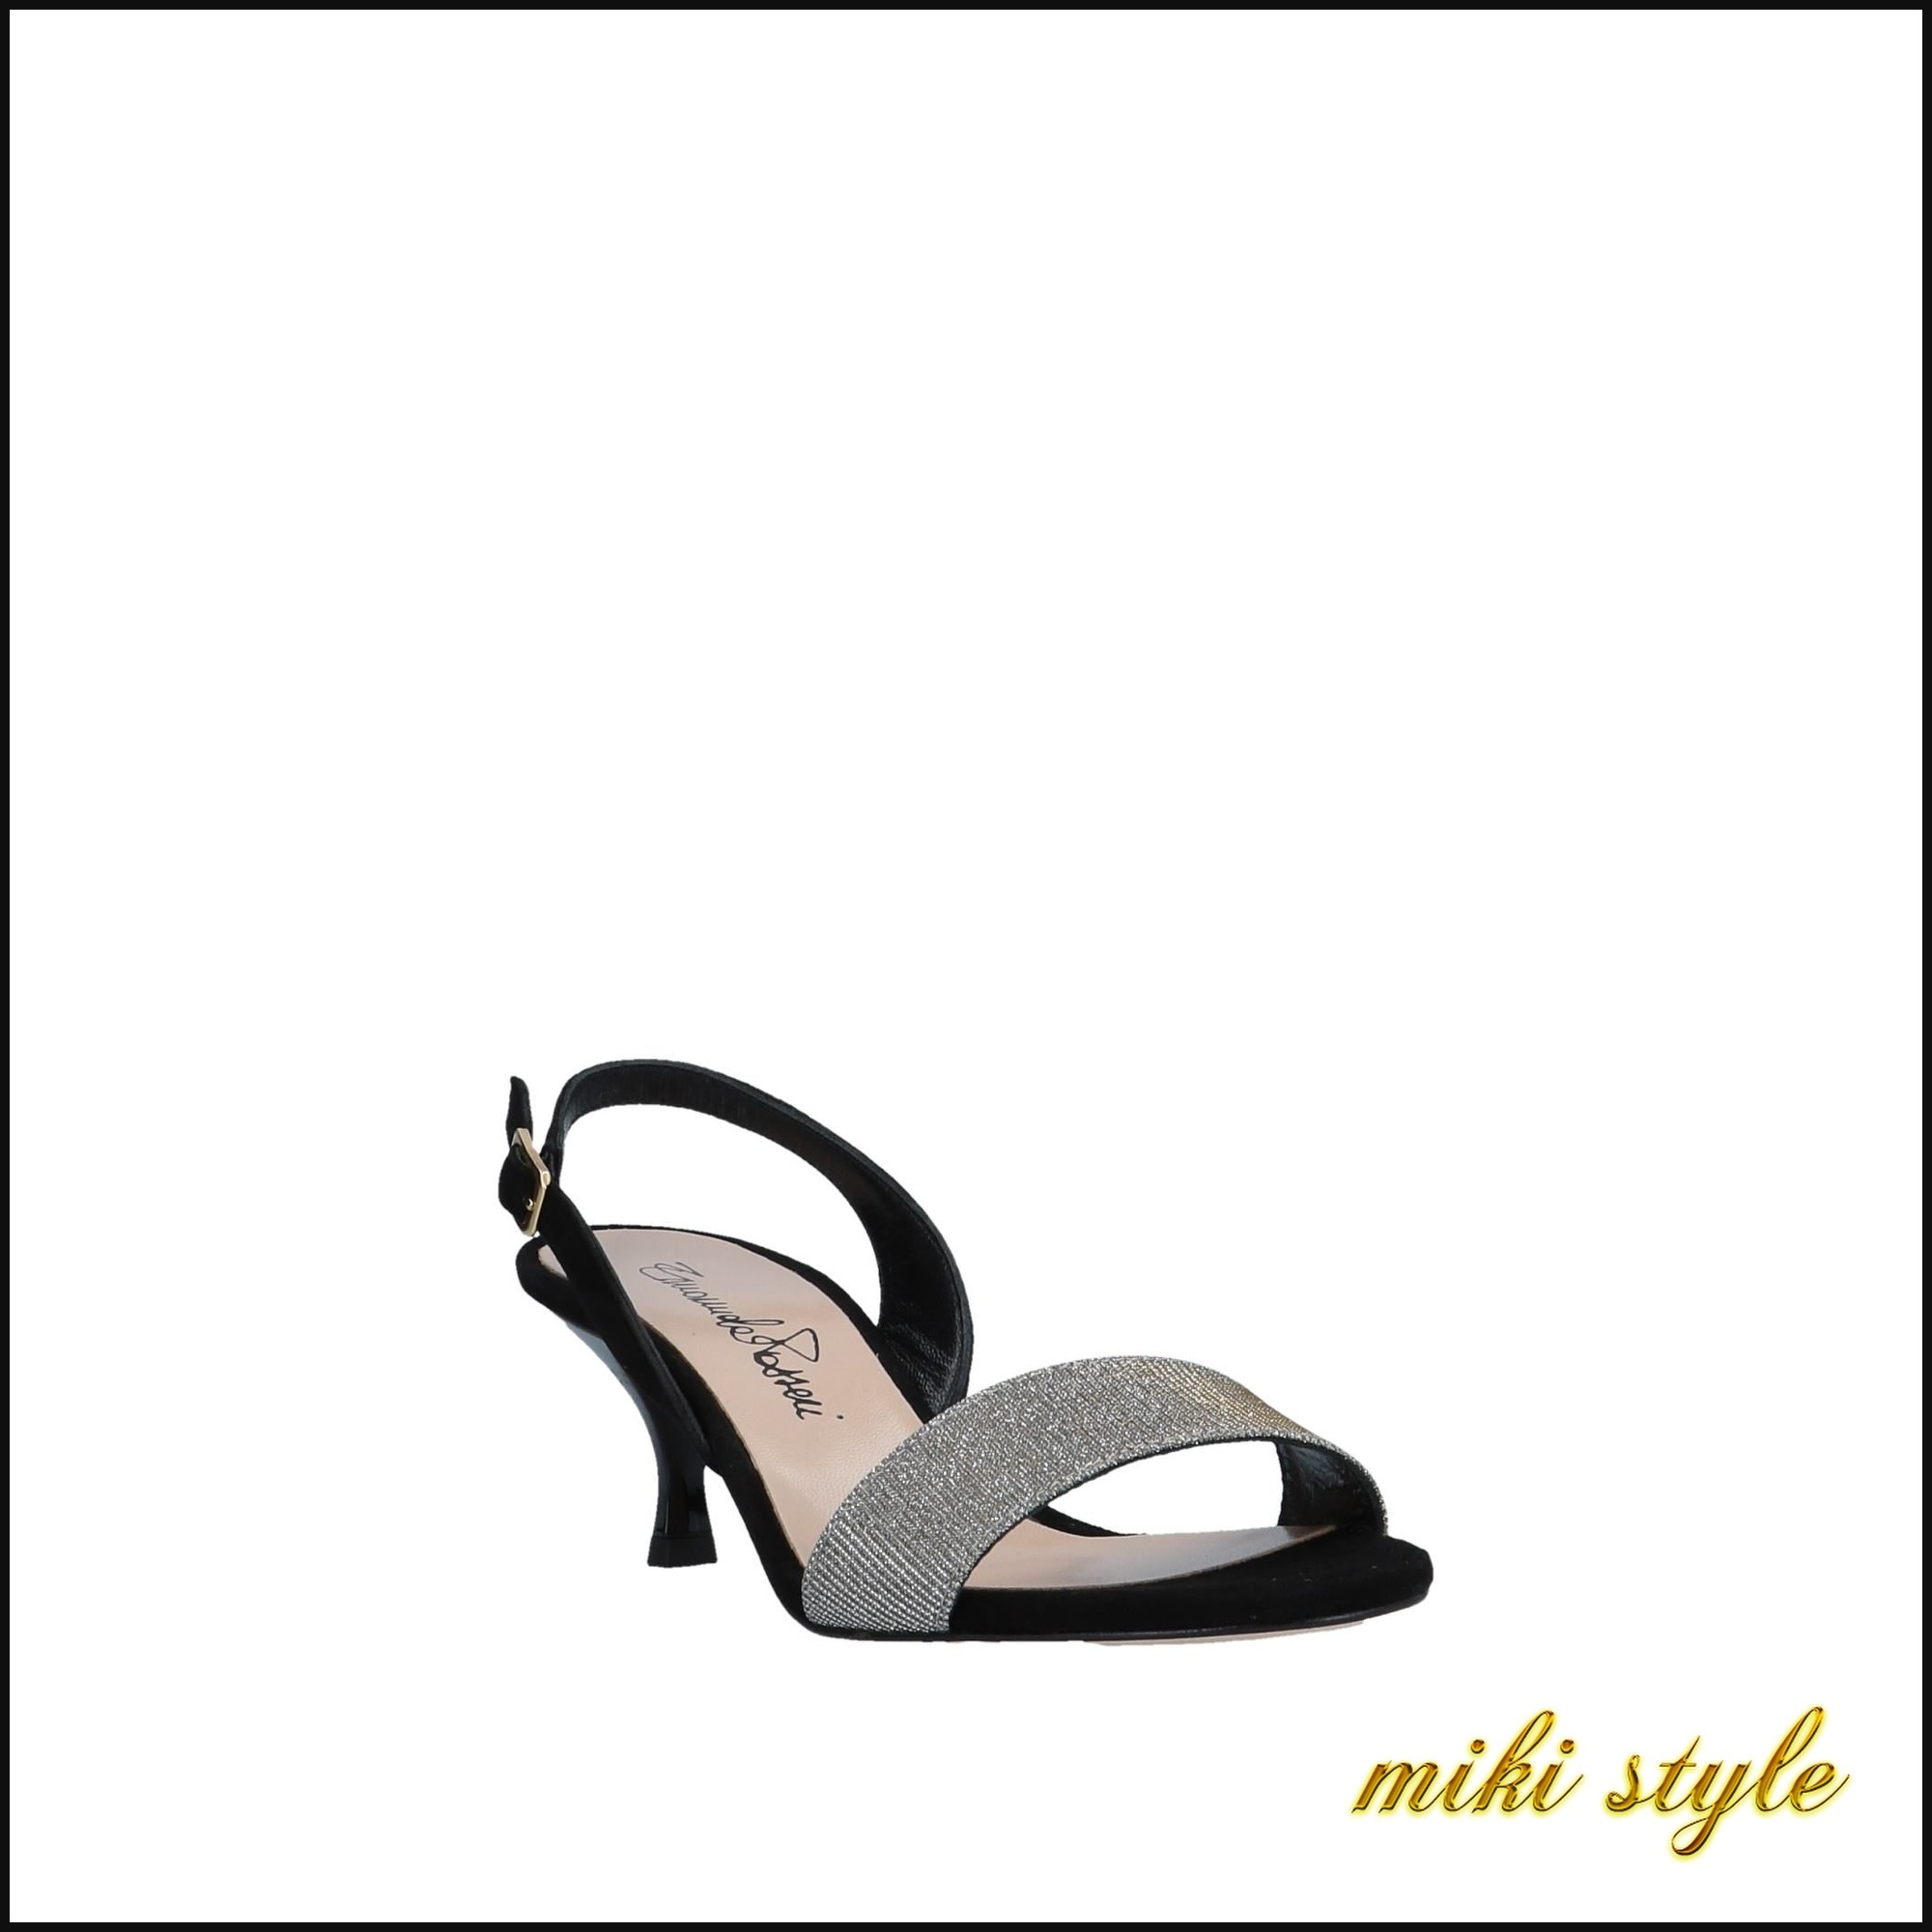 shop emanuela passeri shoes